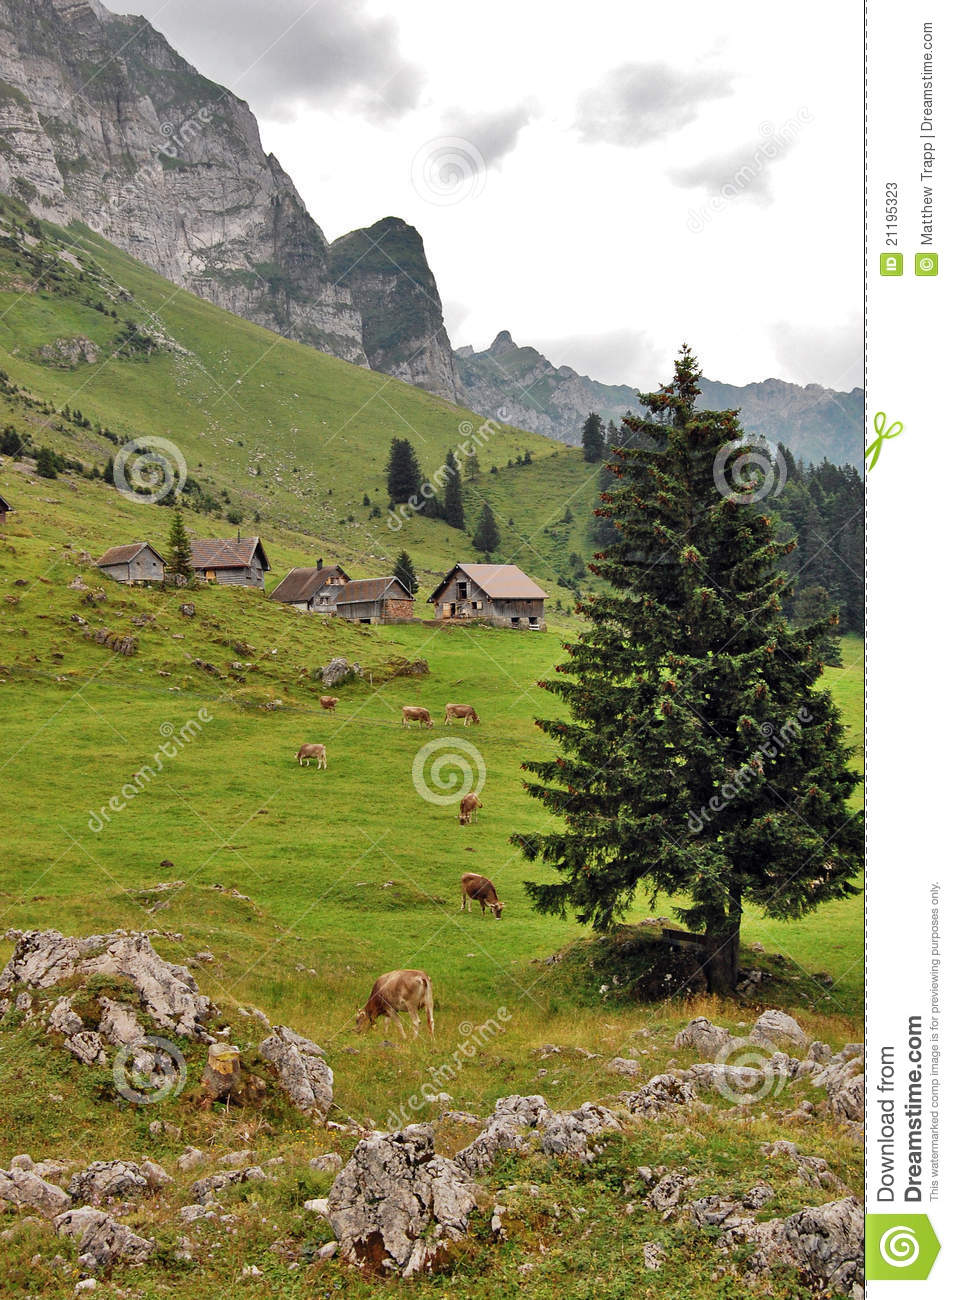 Switzerland mountain countryside with cows